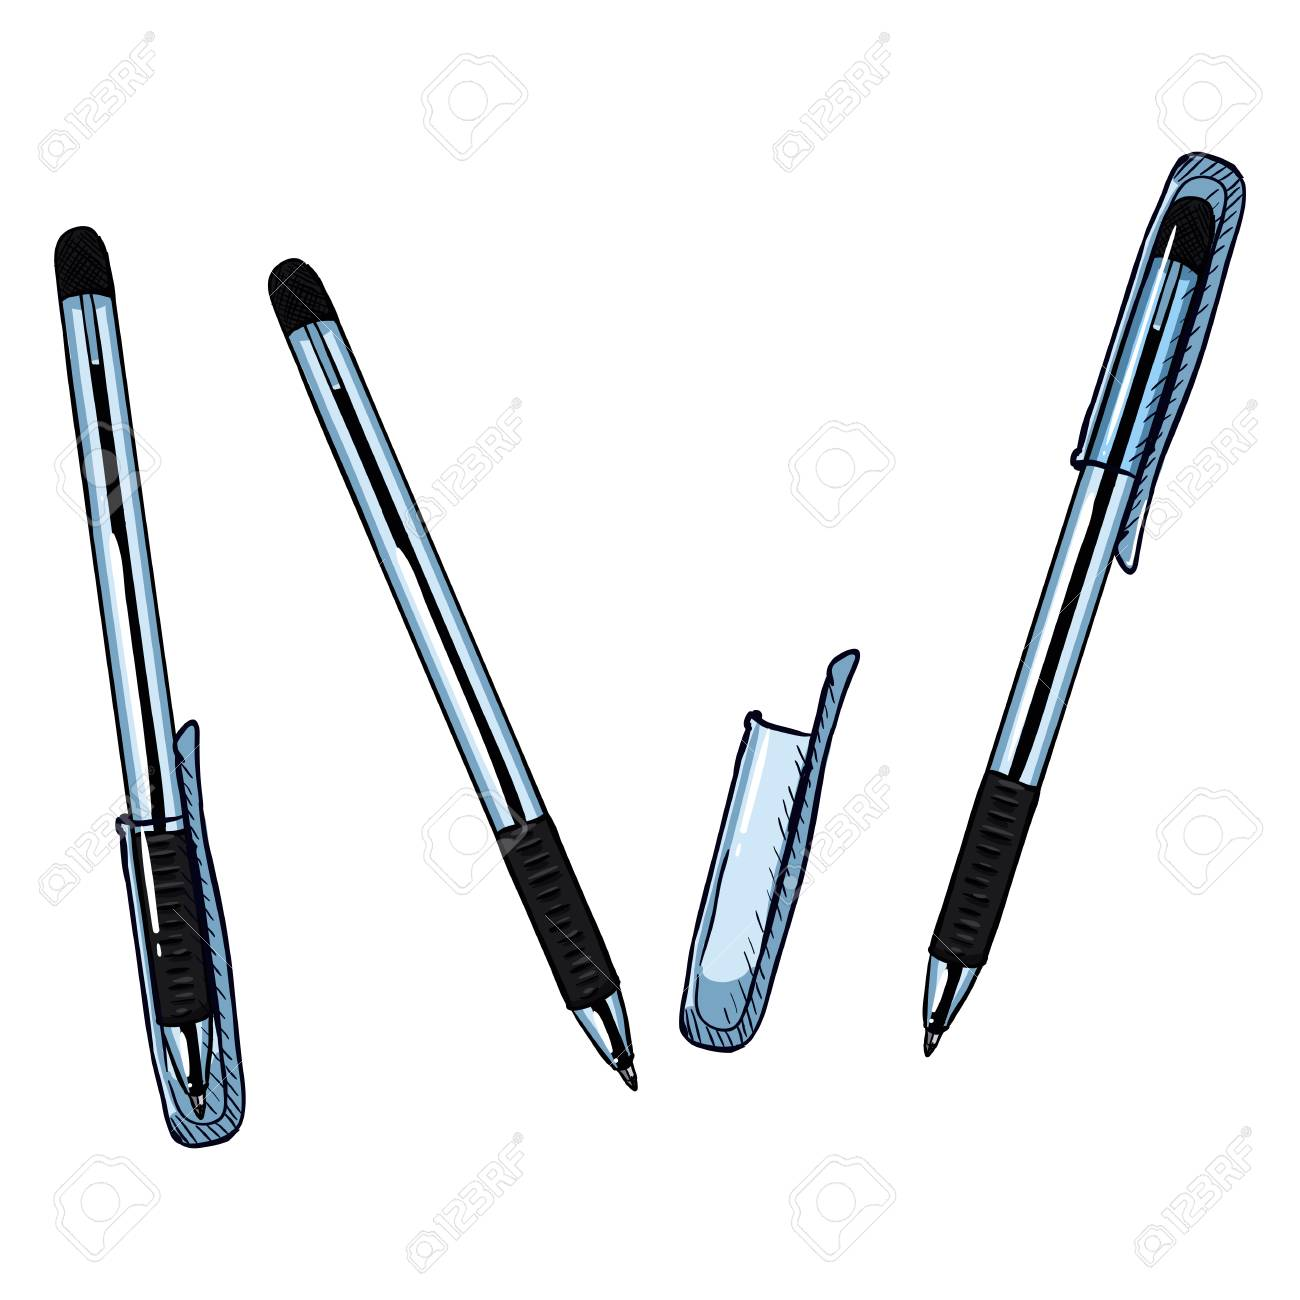 Vector Cartoon Set Of Pens Ballpoint Pens With Caps Variations Royalty Free Cliparts Vectors And Stock Illustration Image 76217874